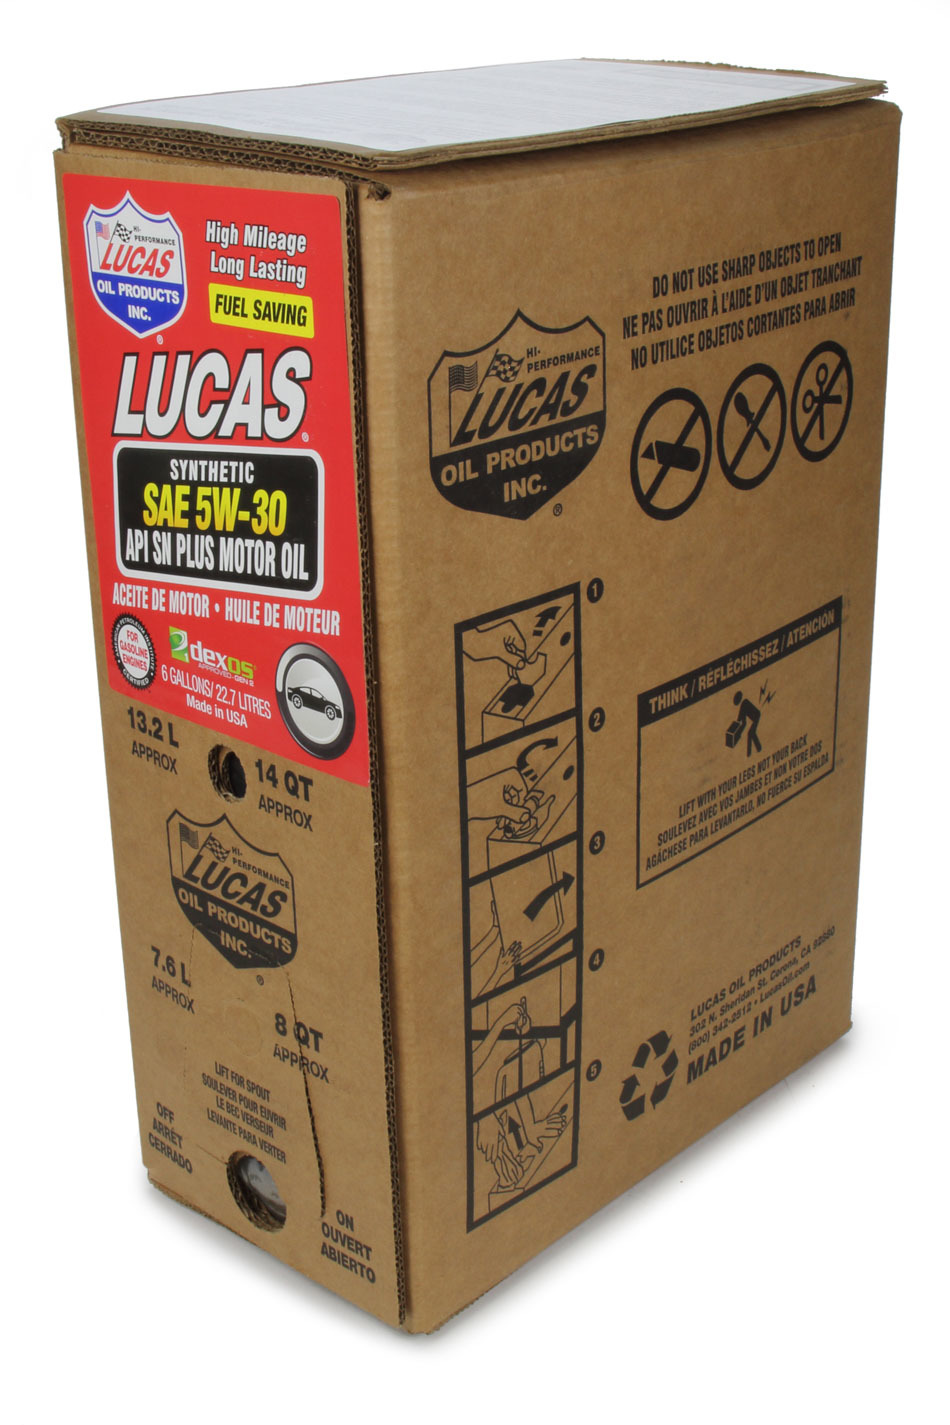 Synthetic SAE 5W30 Oil 6 Gallon Bag In Box